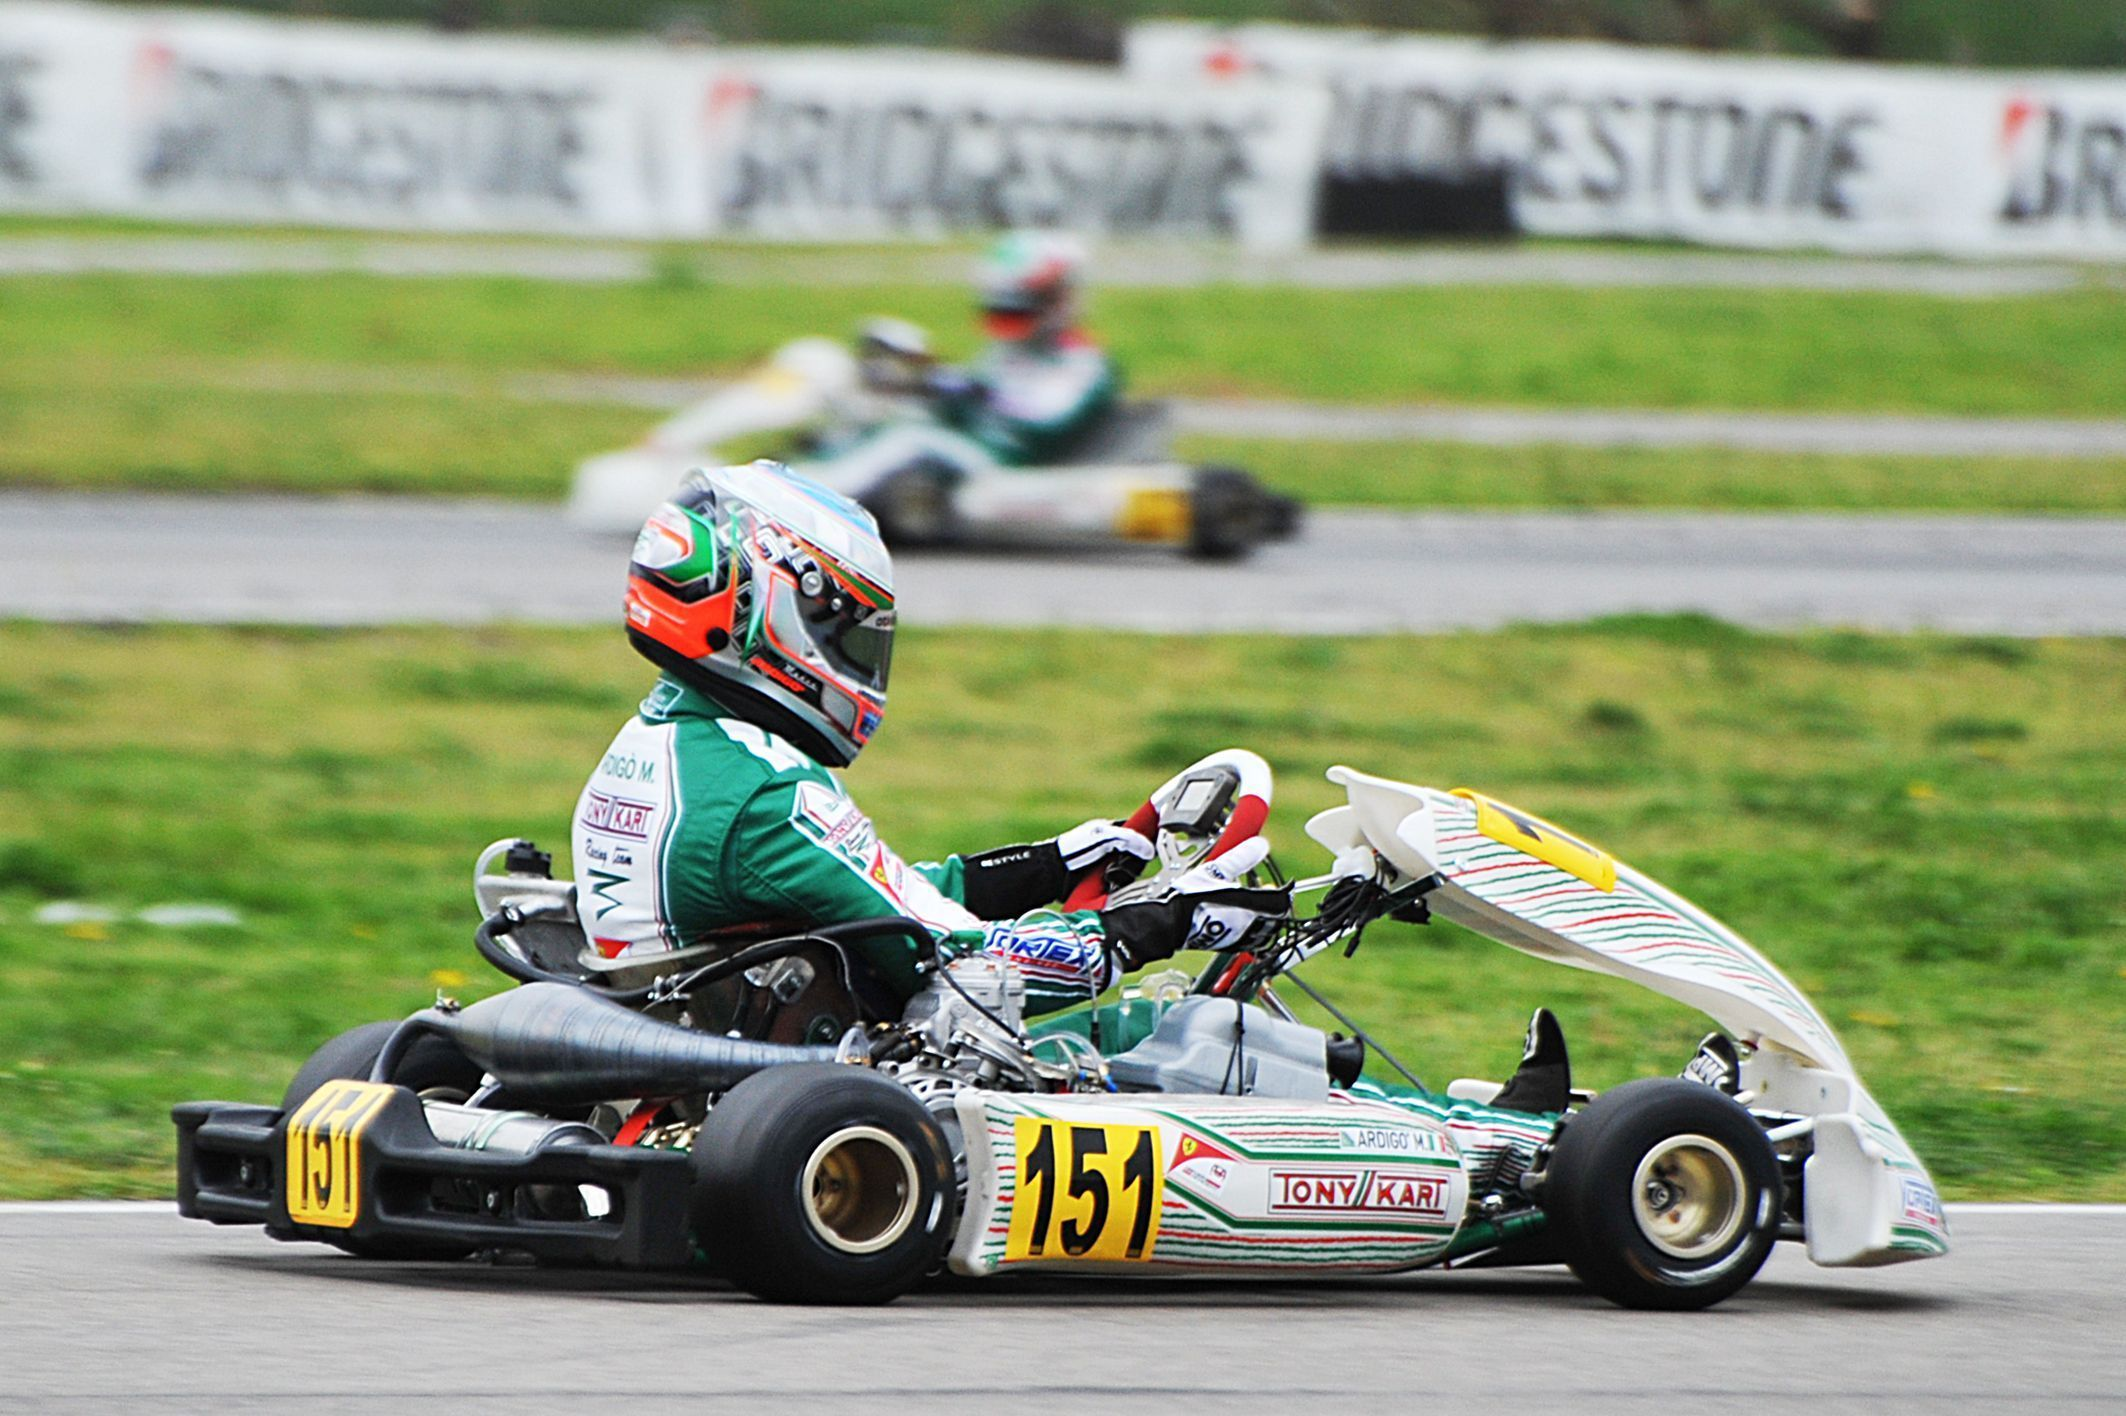 Marco Ardigò triumphs with the new Tony Kart in WSK KZ2